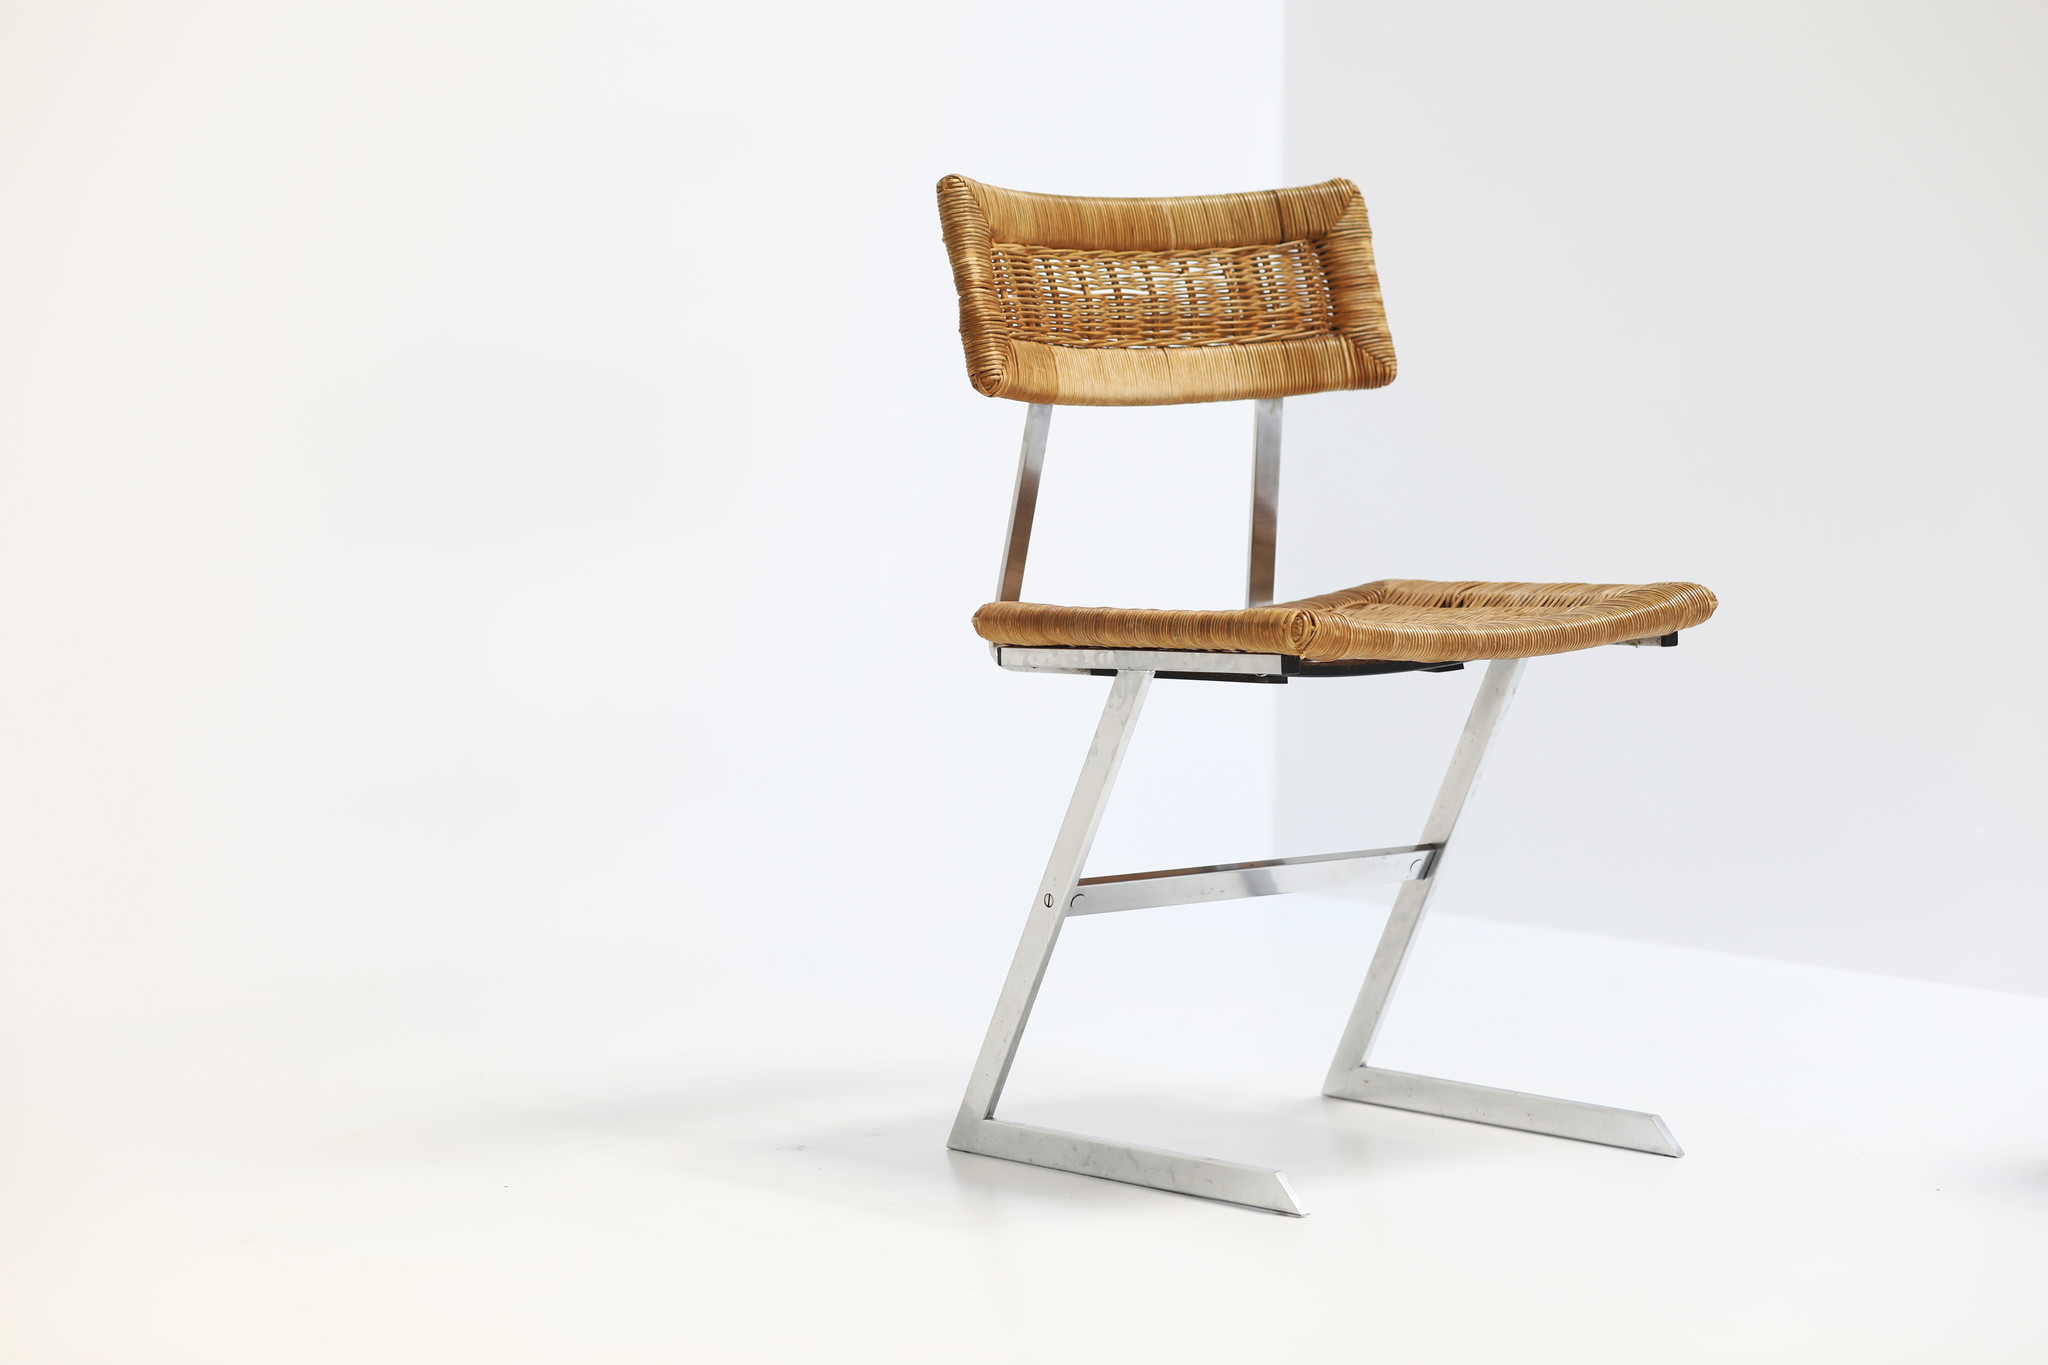 Vintage chairs with Z frame and wicker seats